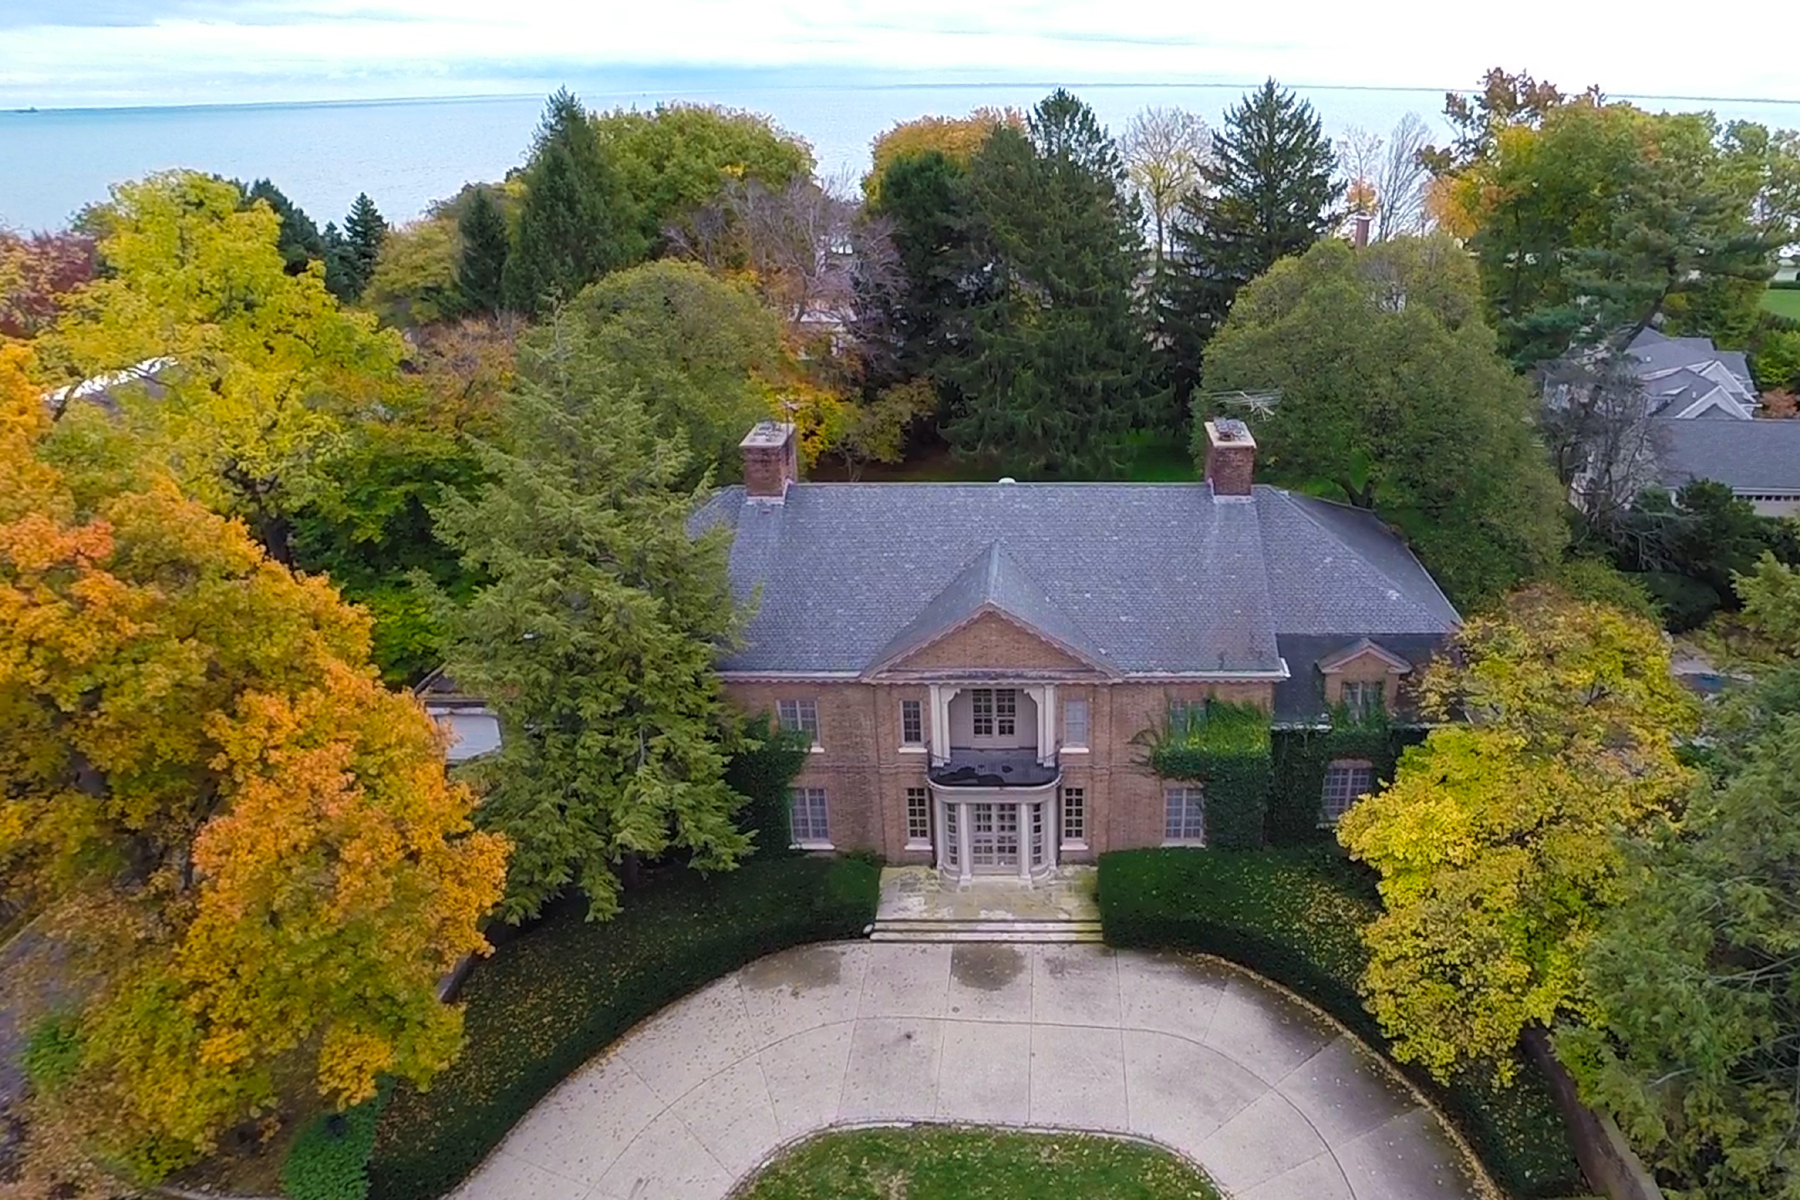 Single Family Home for Sale at Grosse Pointe Farms 30 Preston Grosse Pointe Farms, Michigan, 48236 United States